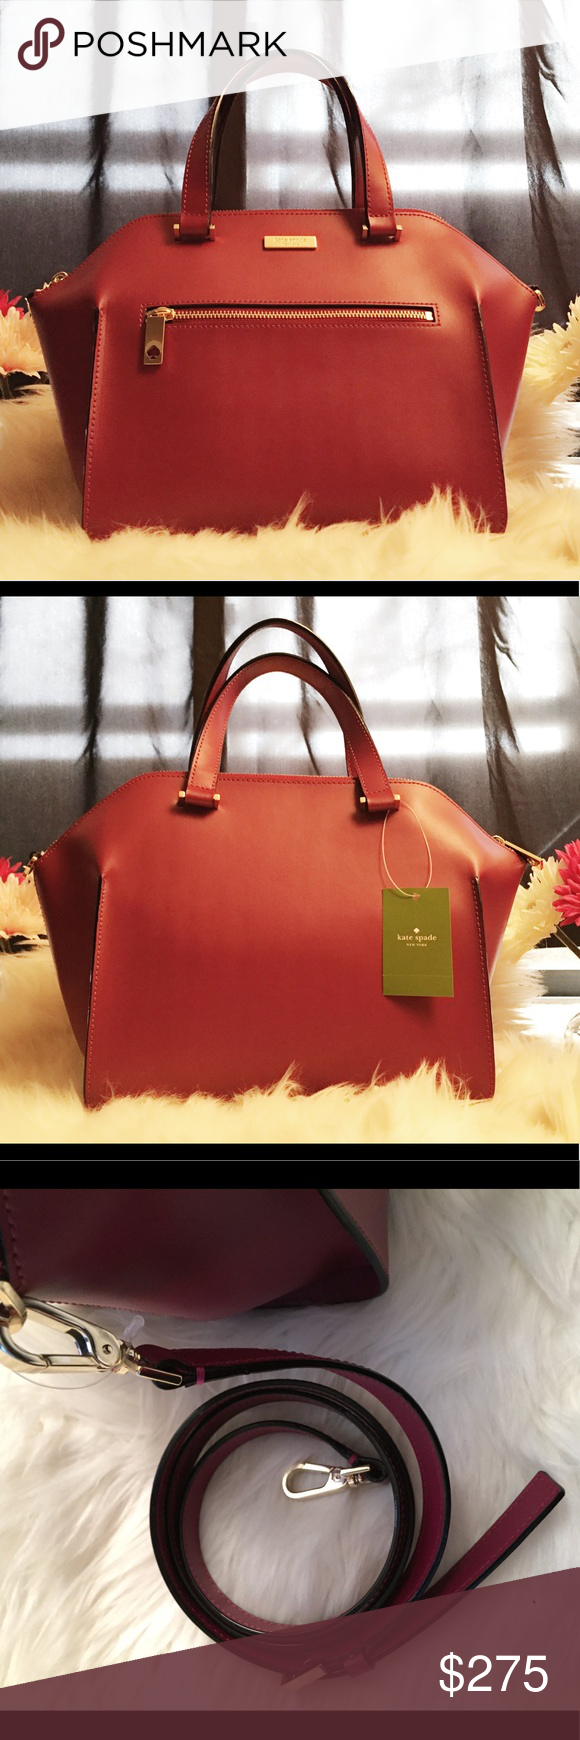 252ffc59b2c4 Kate Spade Savannah Parliament Square Brand New Authentic Kate Spade Plum  red color. Top zipped